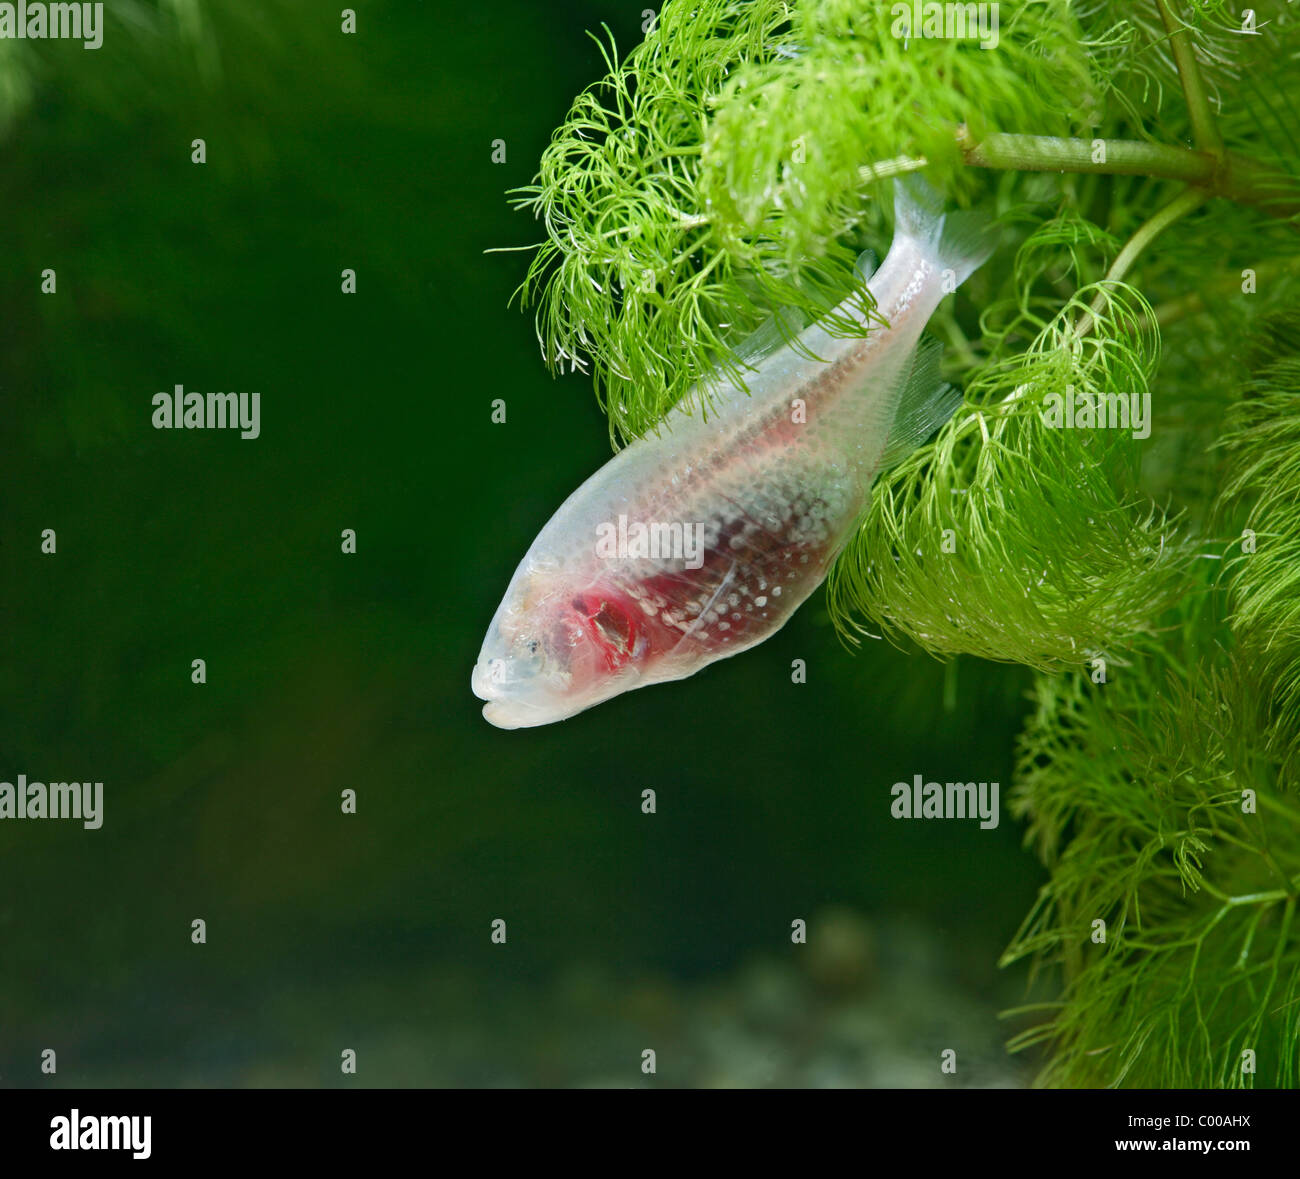 Blind Cave Fish Stock Photos & Blind Cave Fish Stock Images - Alamy